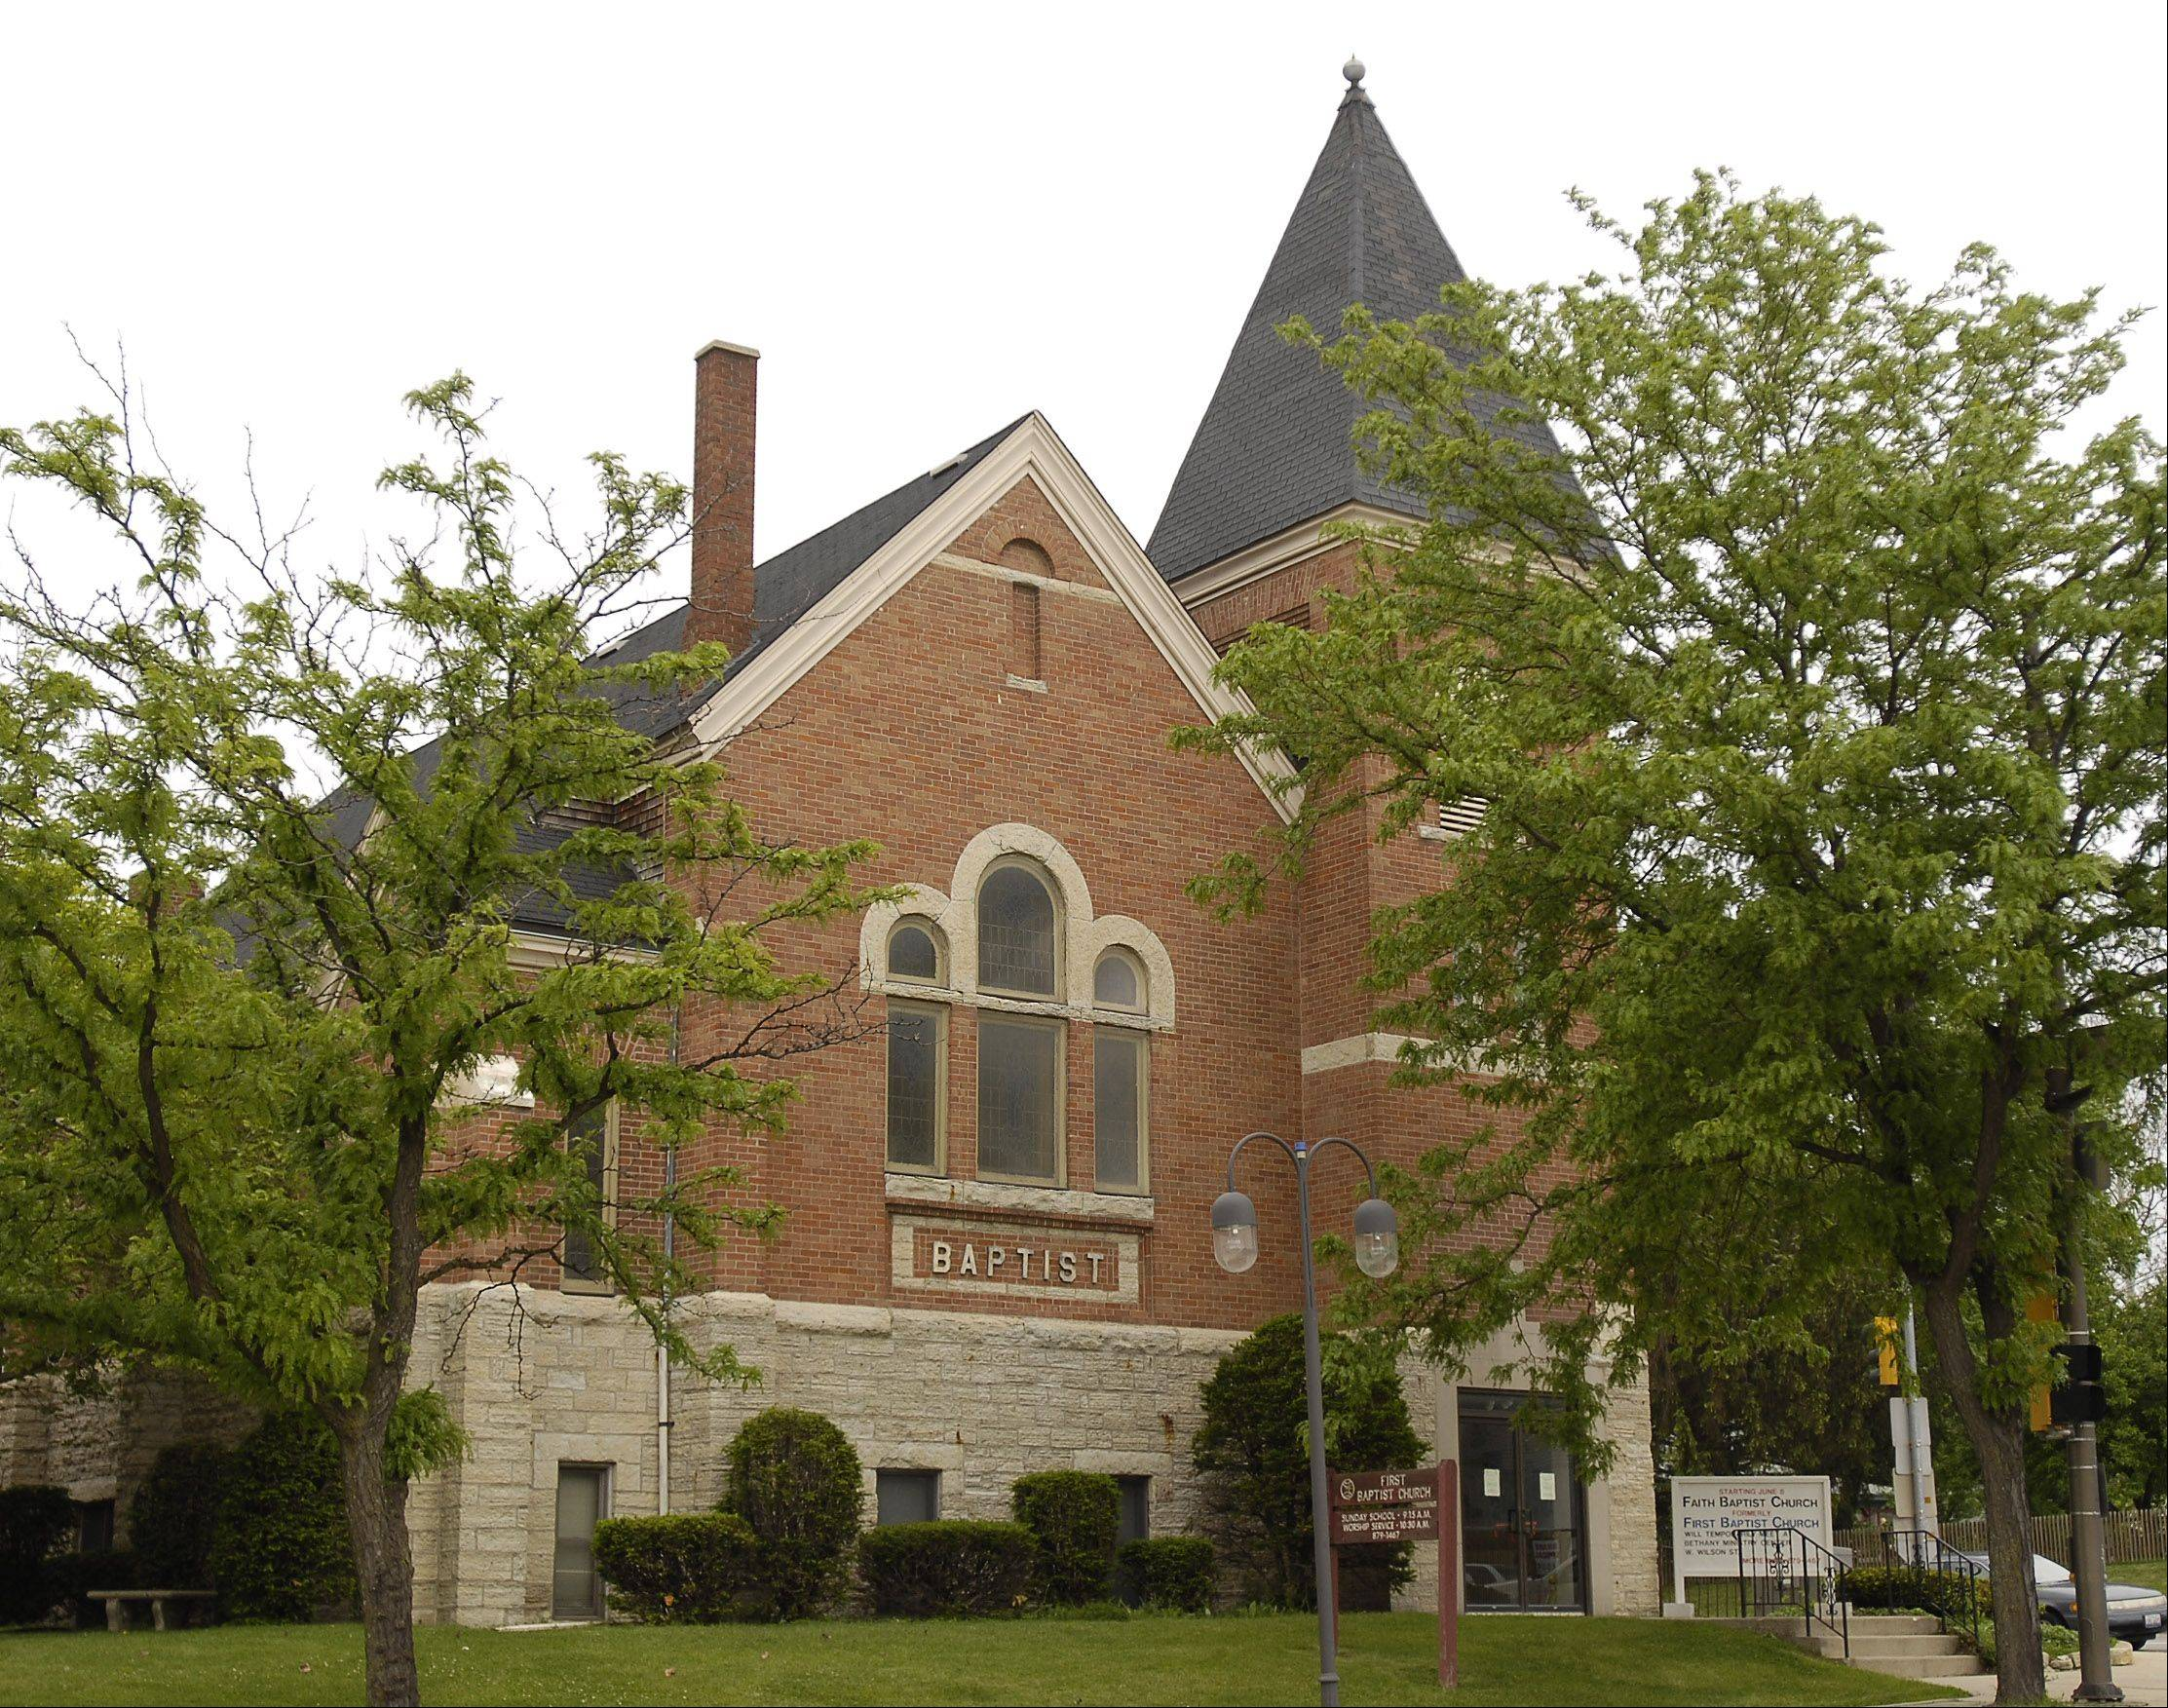 Batavia to vet use of church campus it owns